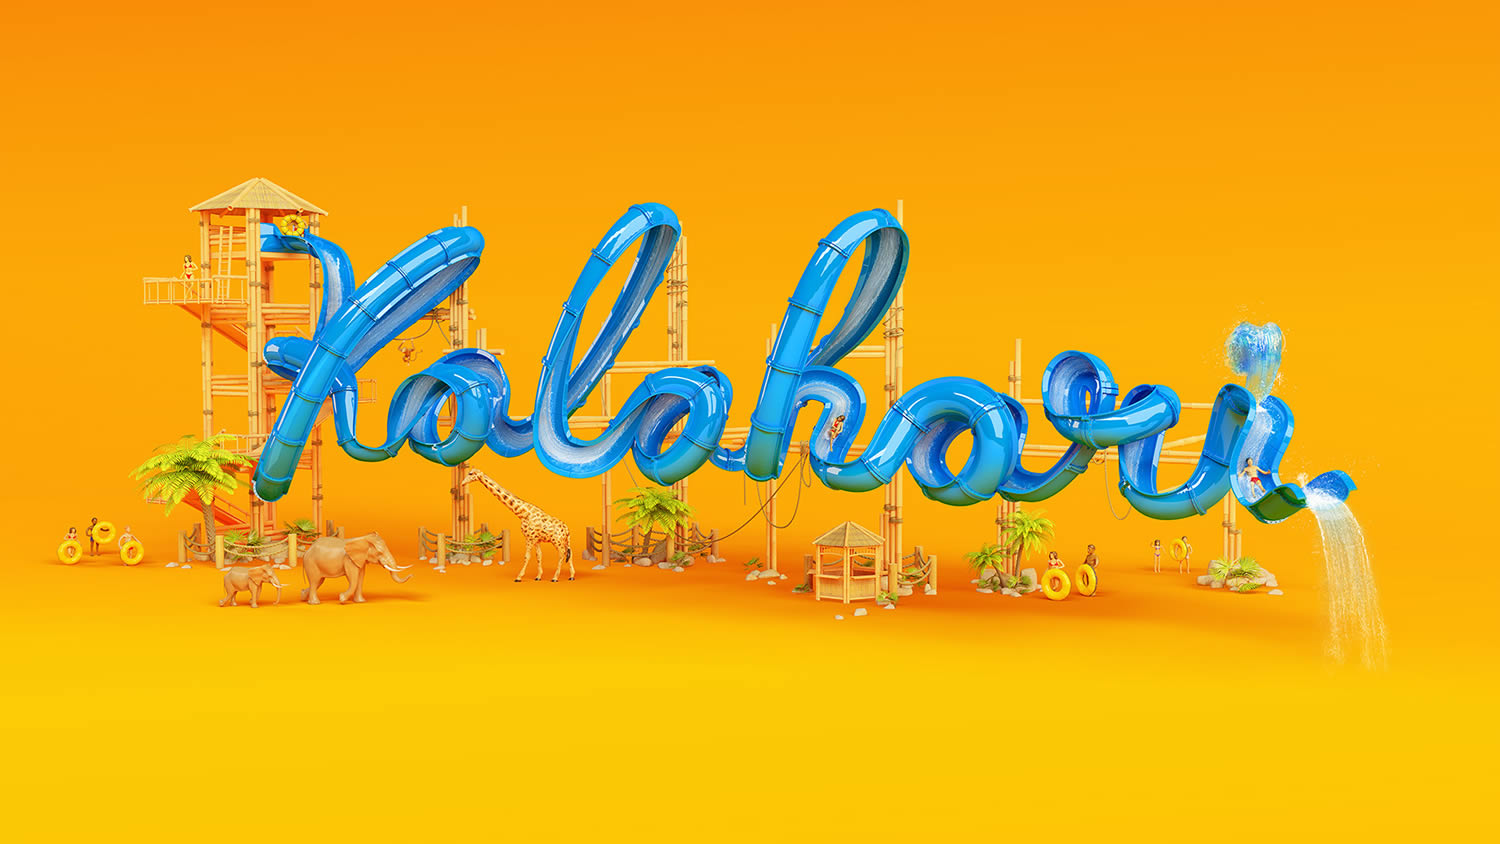 kalahari, water slide in blue, 3d typography by foreal